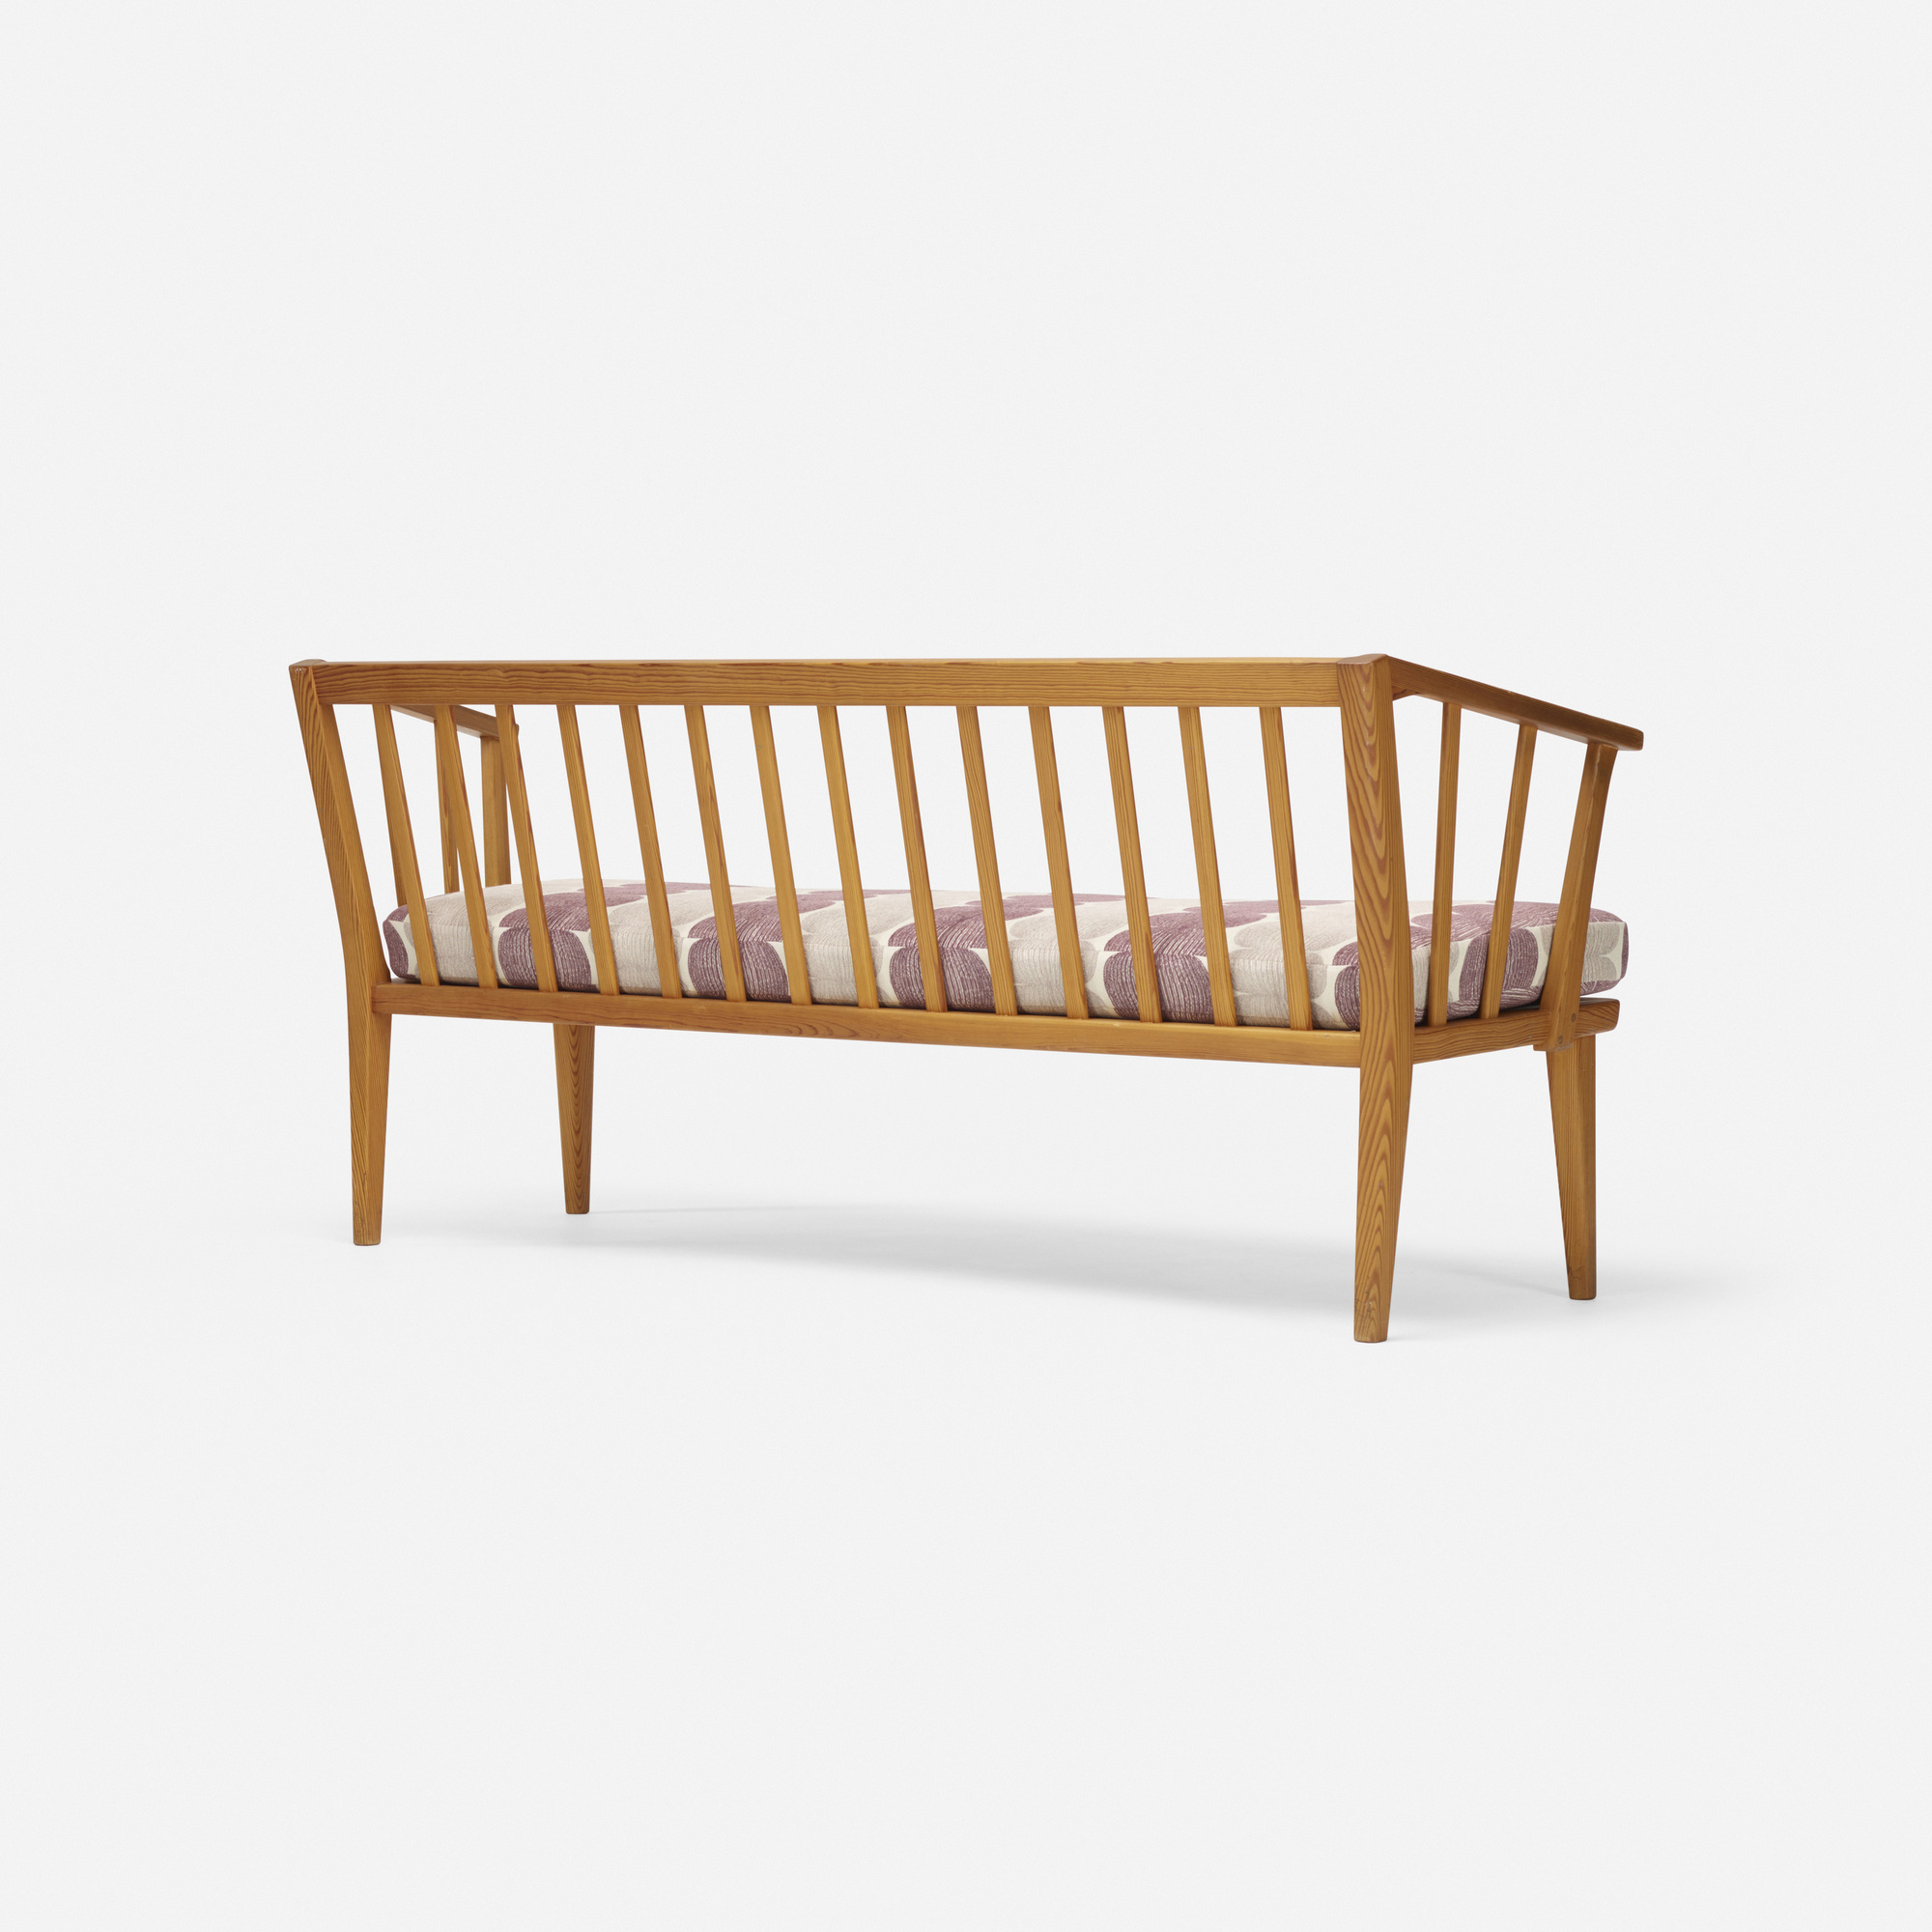 Karl Malmsten Carl Malmsten Carl Malmsten Samsas Sofa From The Sixties By Carl Malmsten For